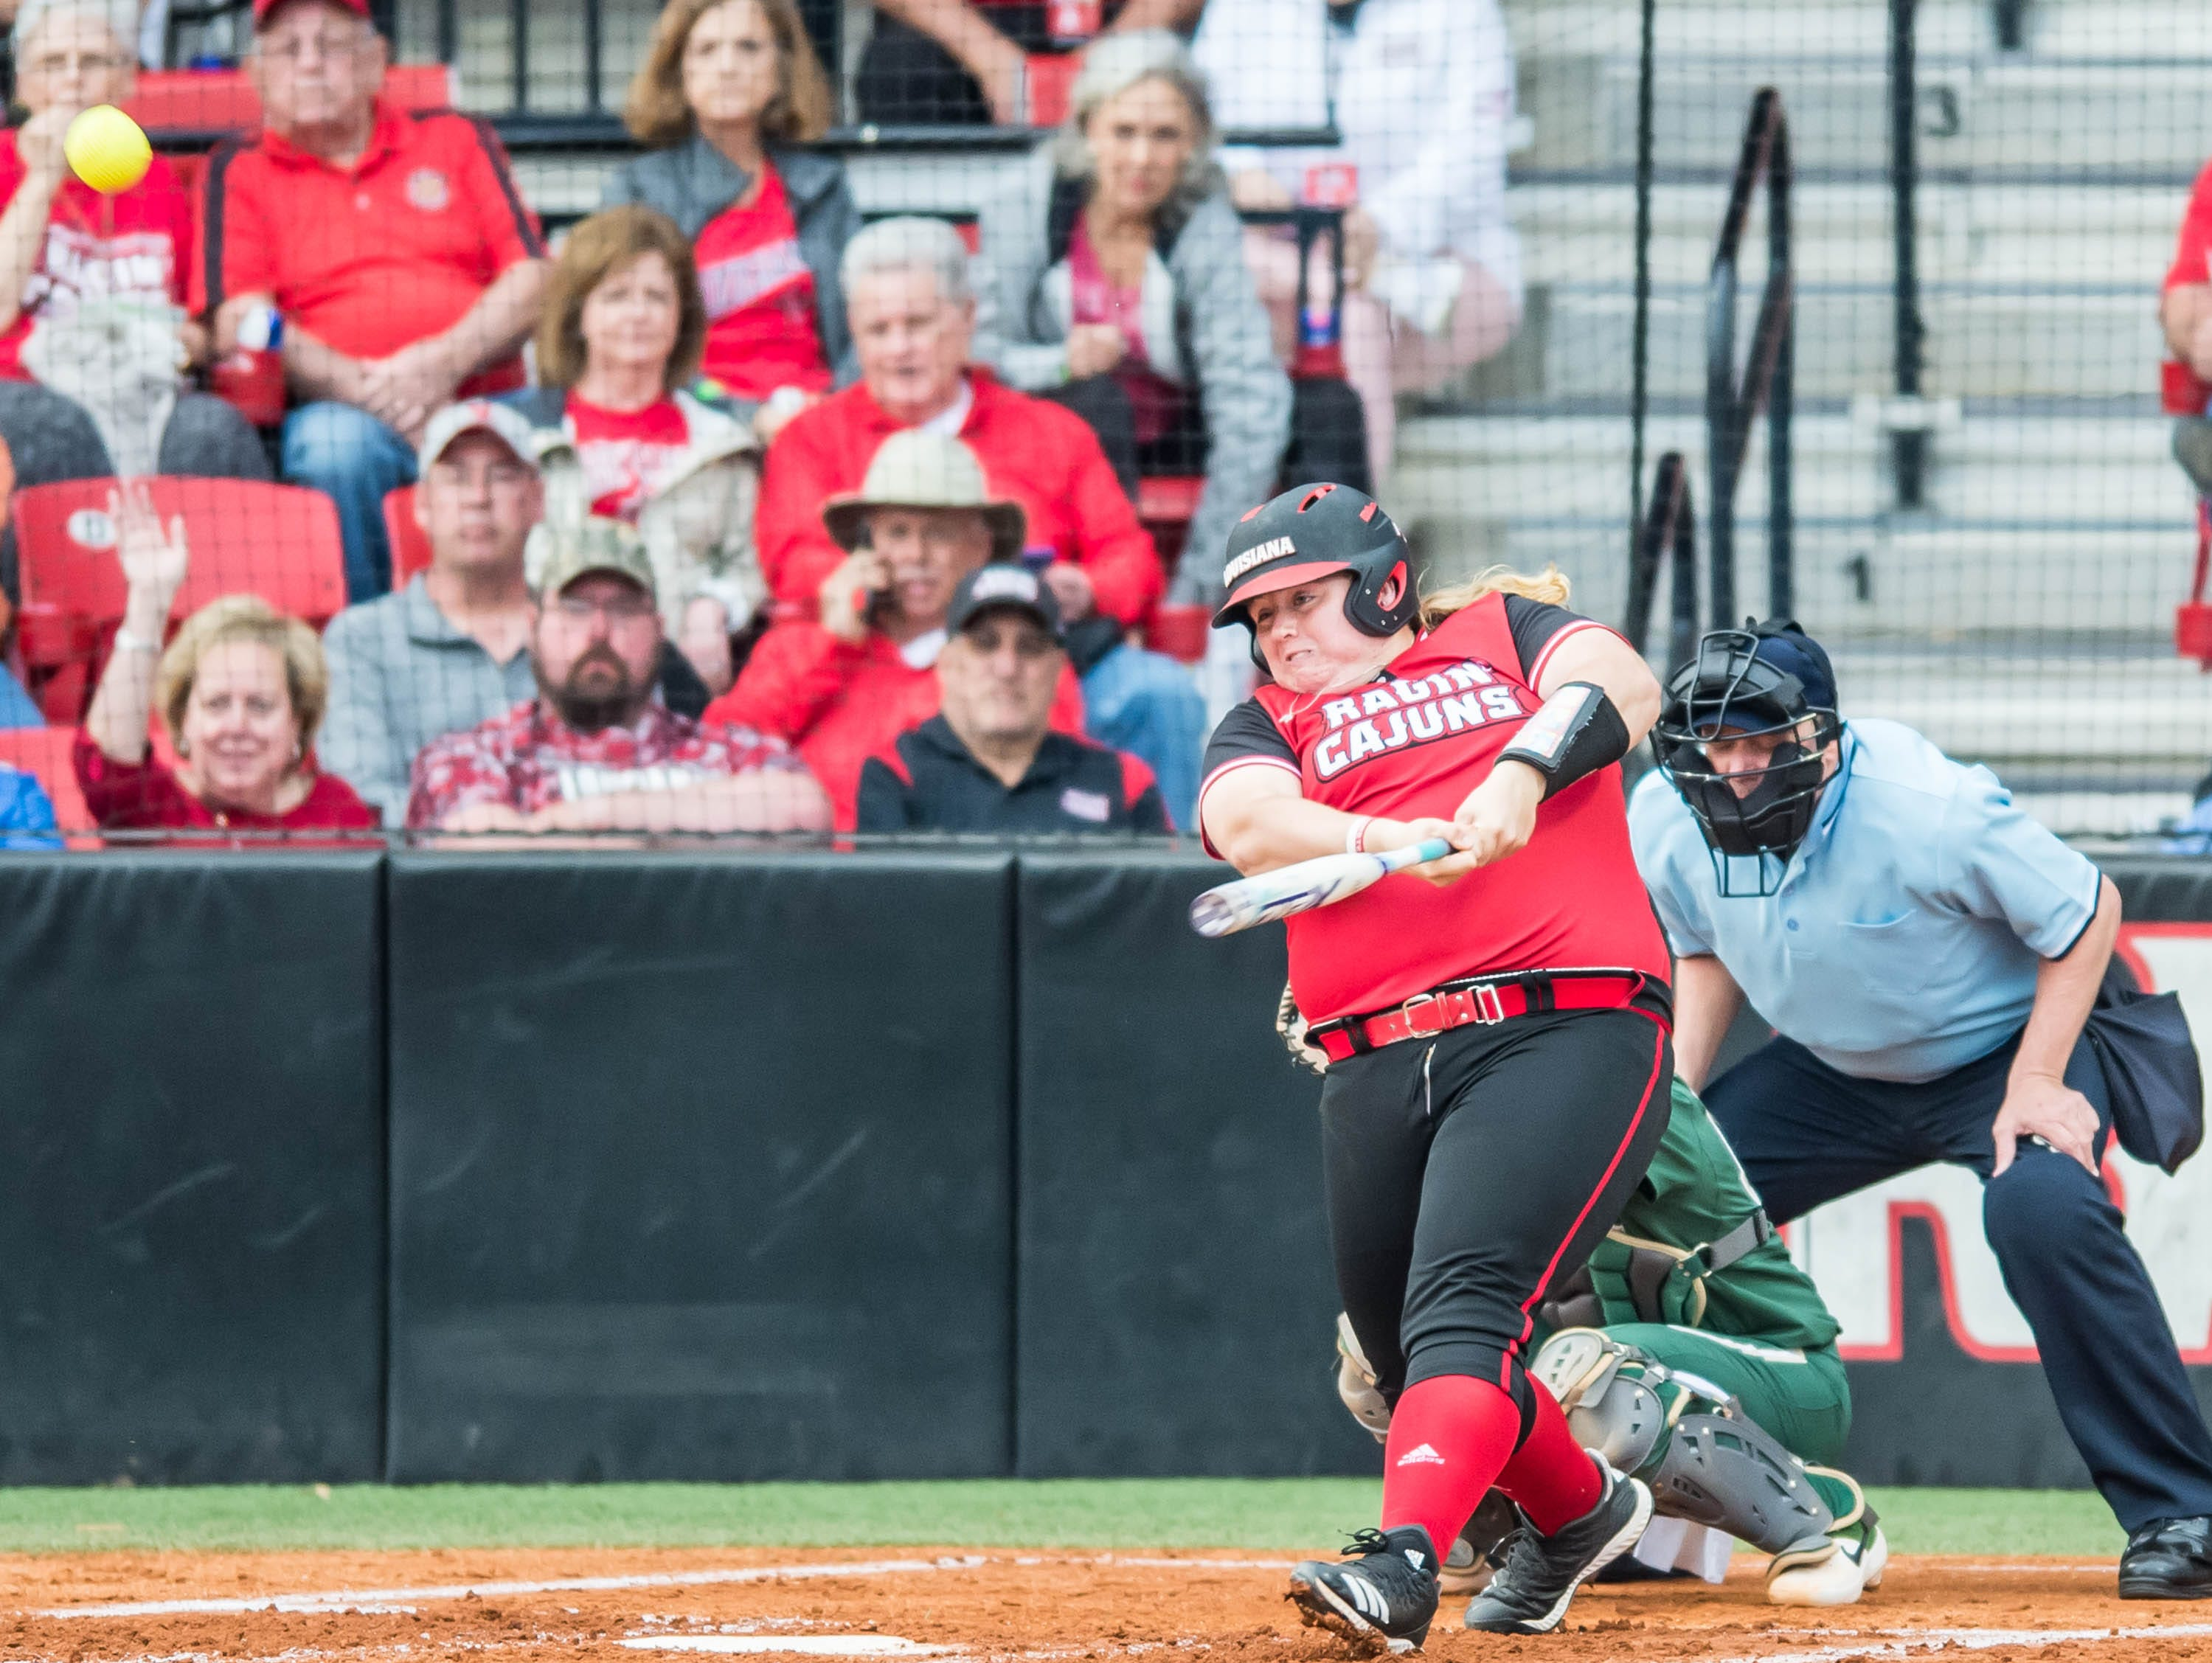 UL first baseman Bailey Curry makes contact with the ball on Monday night at Lamson Park.